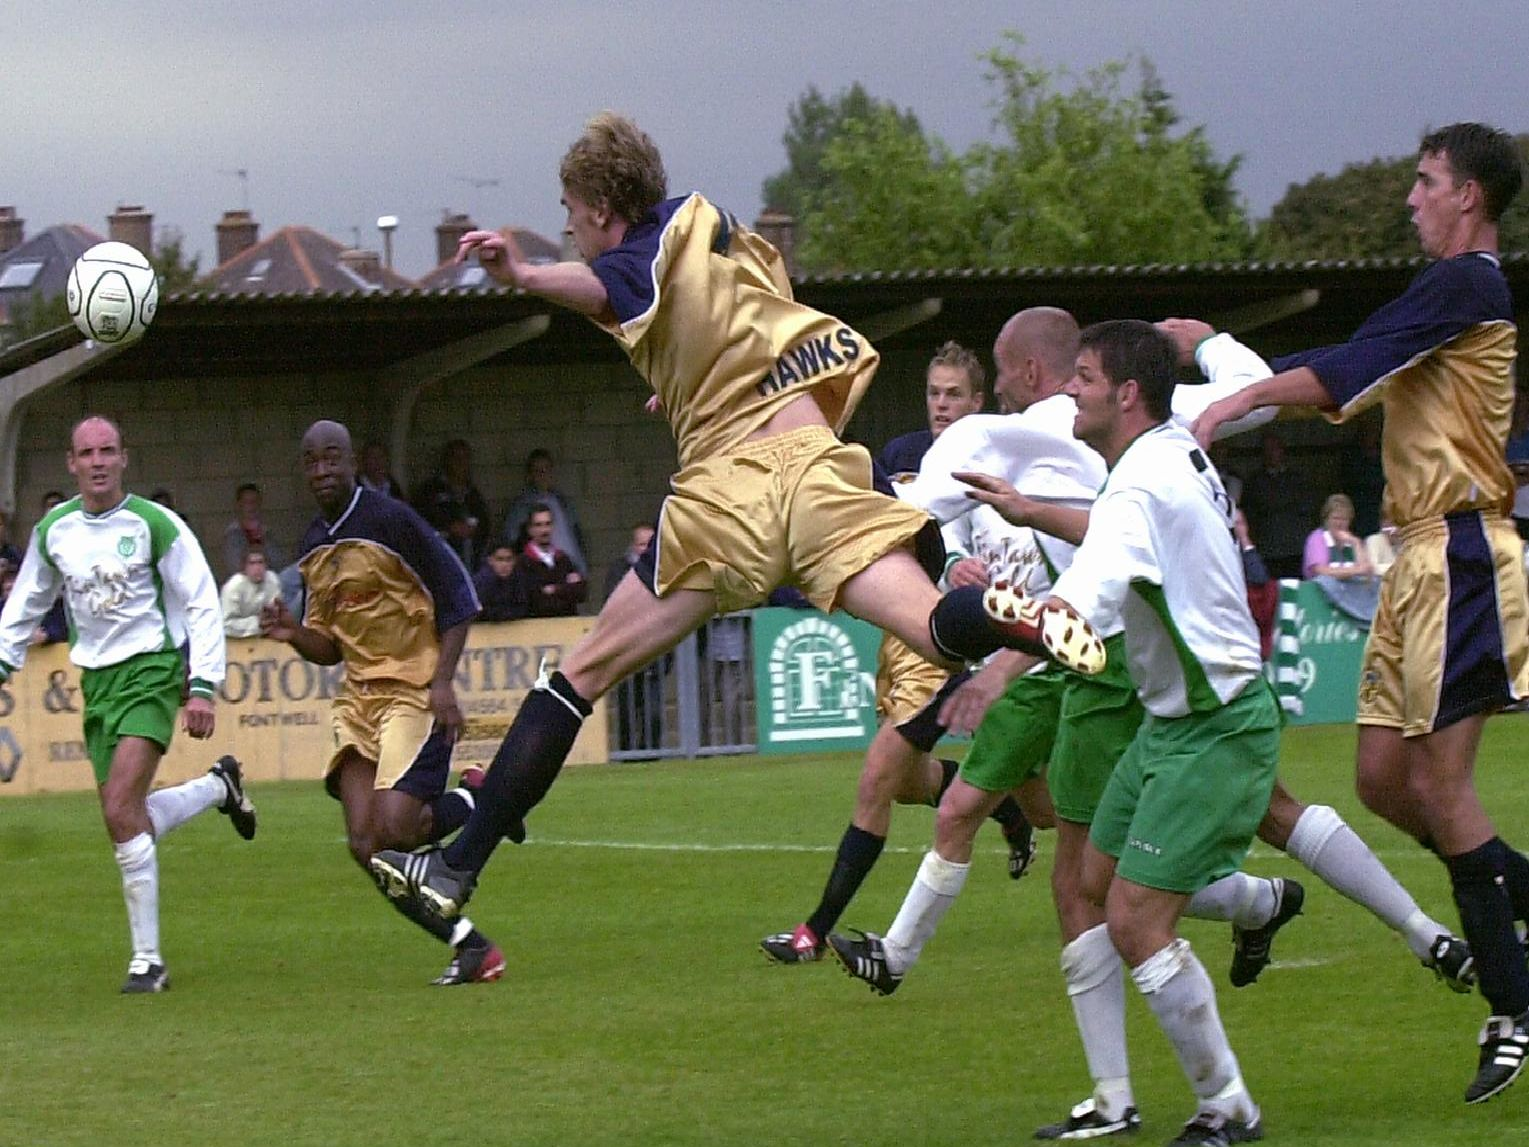 Can you name the season and who the Rocks were playing, or ID any of the players?